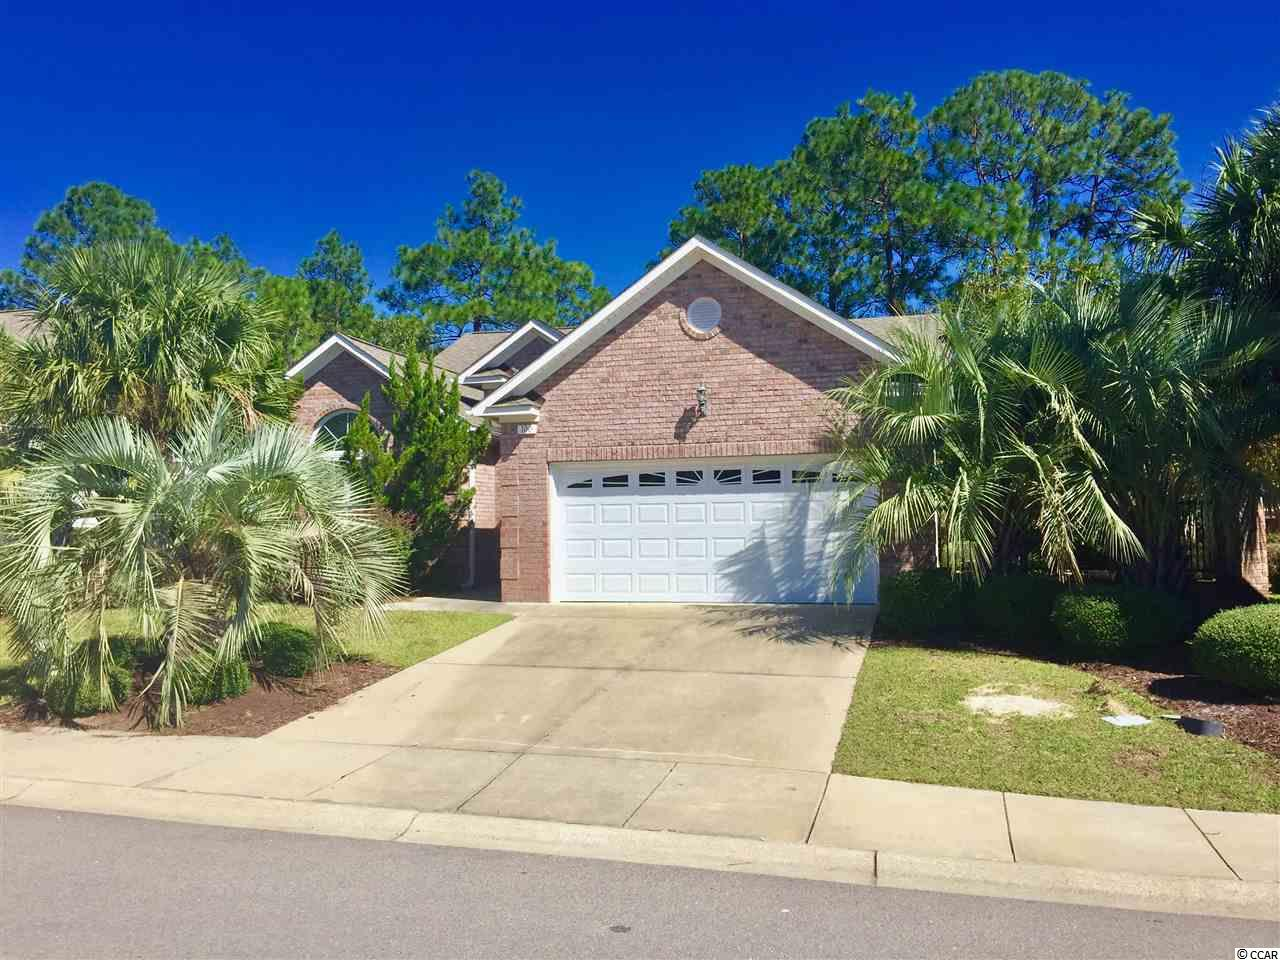 100 Kessinger Dr., Surfside Beach, SC 29575